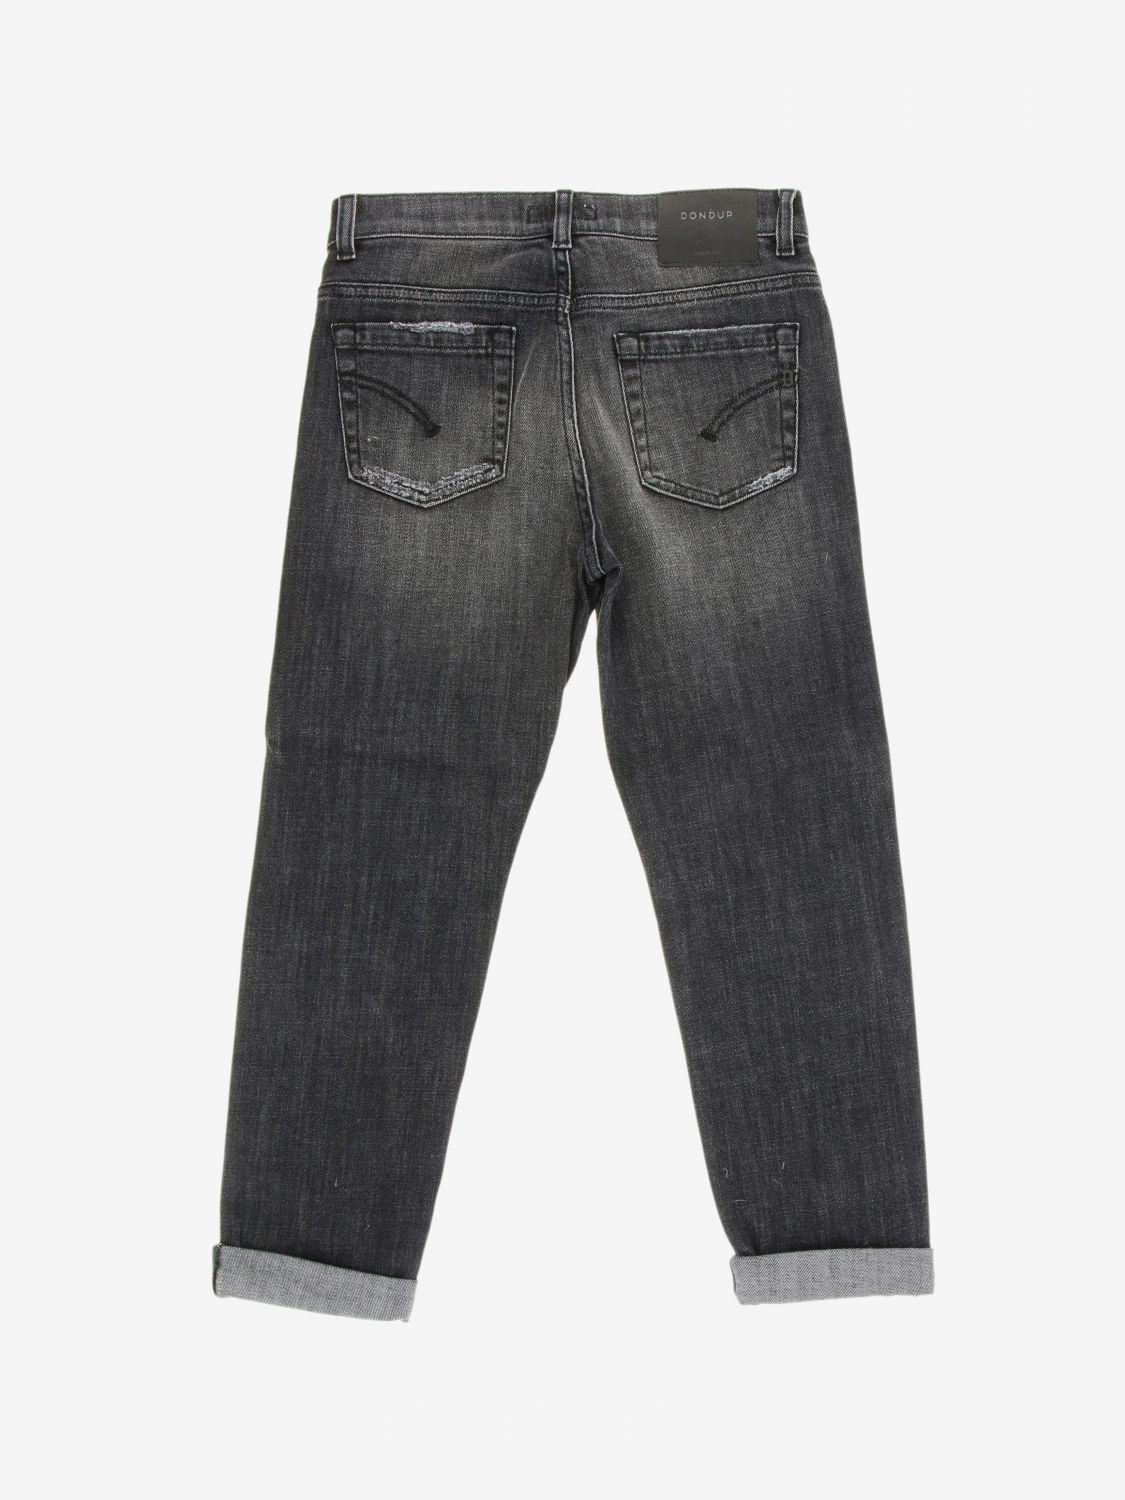 Jeans Dondup: Jeans Brighton Dondup carrots fit con rotture nero 2